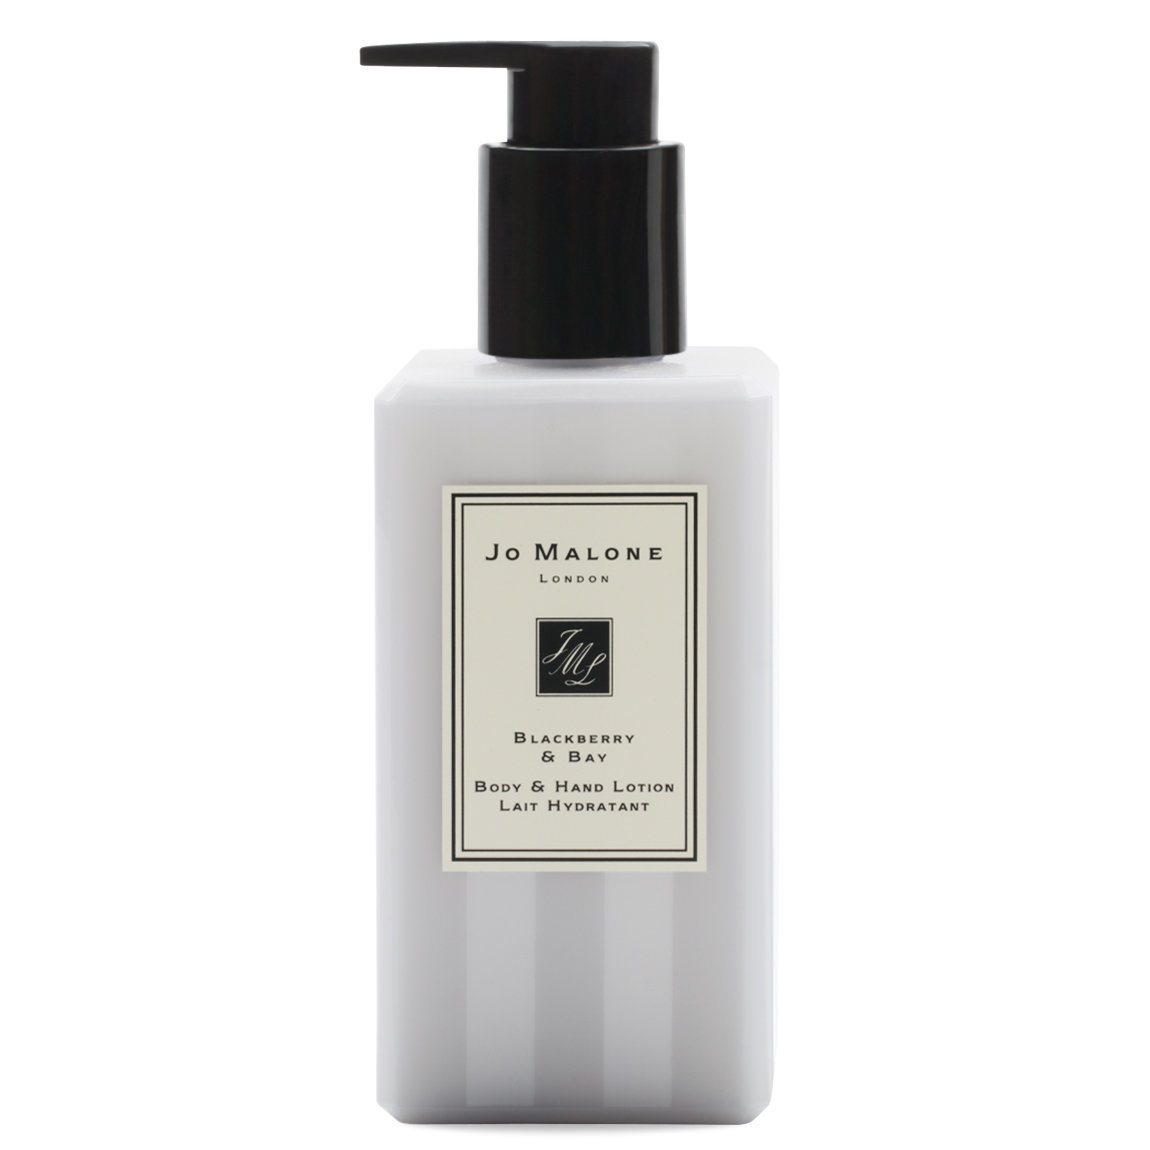 Jo Malone London Blackberry & Bay Body & Hand Lotion product smear.